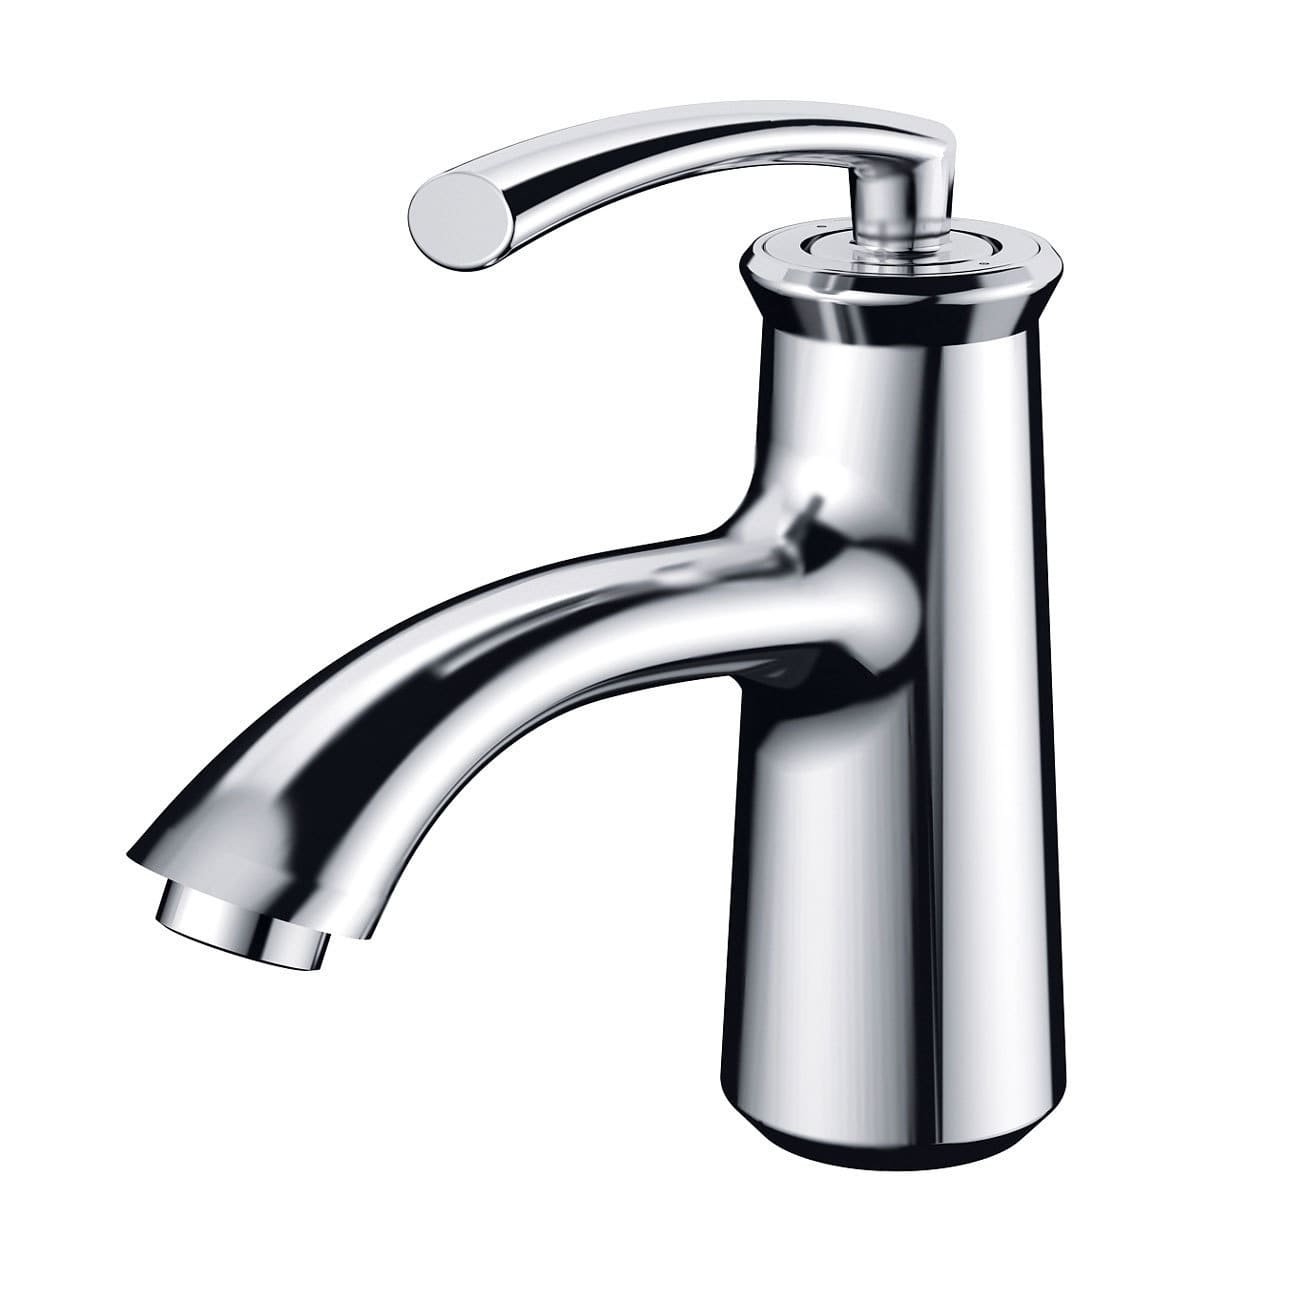 ELIMAX'S Elimax Luxury Short Chrome Single-handle Bathroom Lavatory Faucet by ELIMAX'S (Image #1)